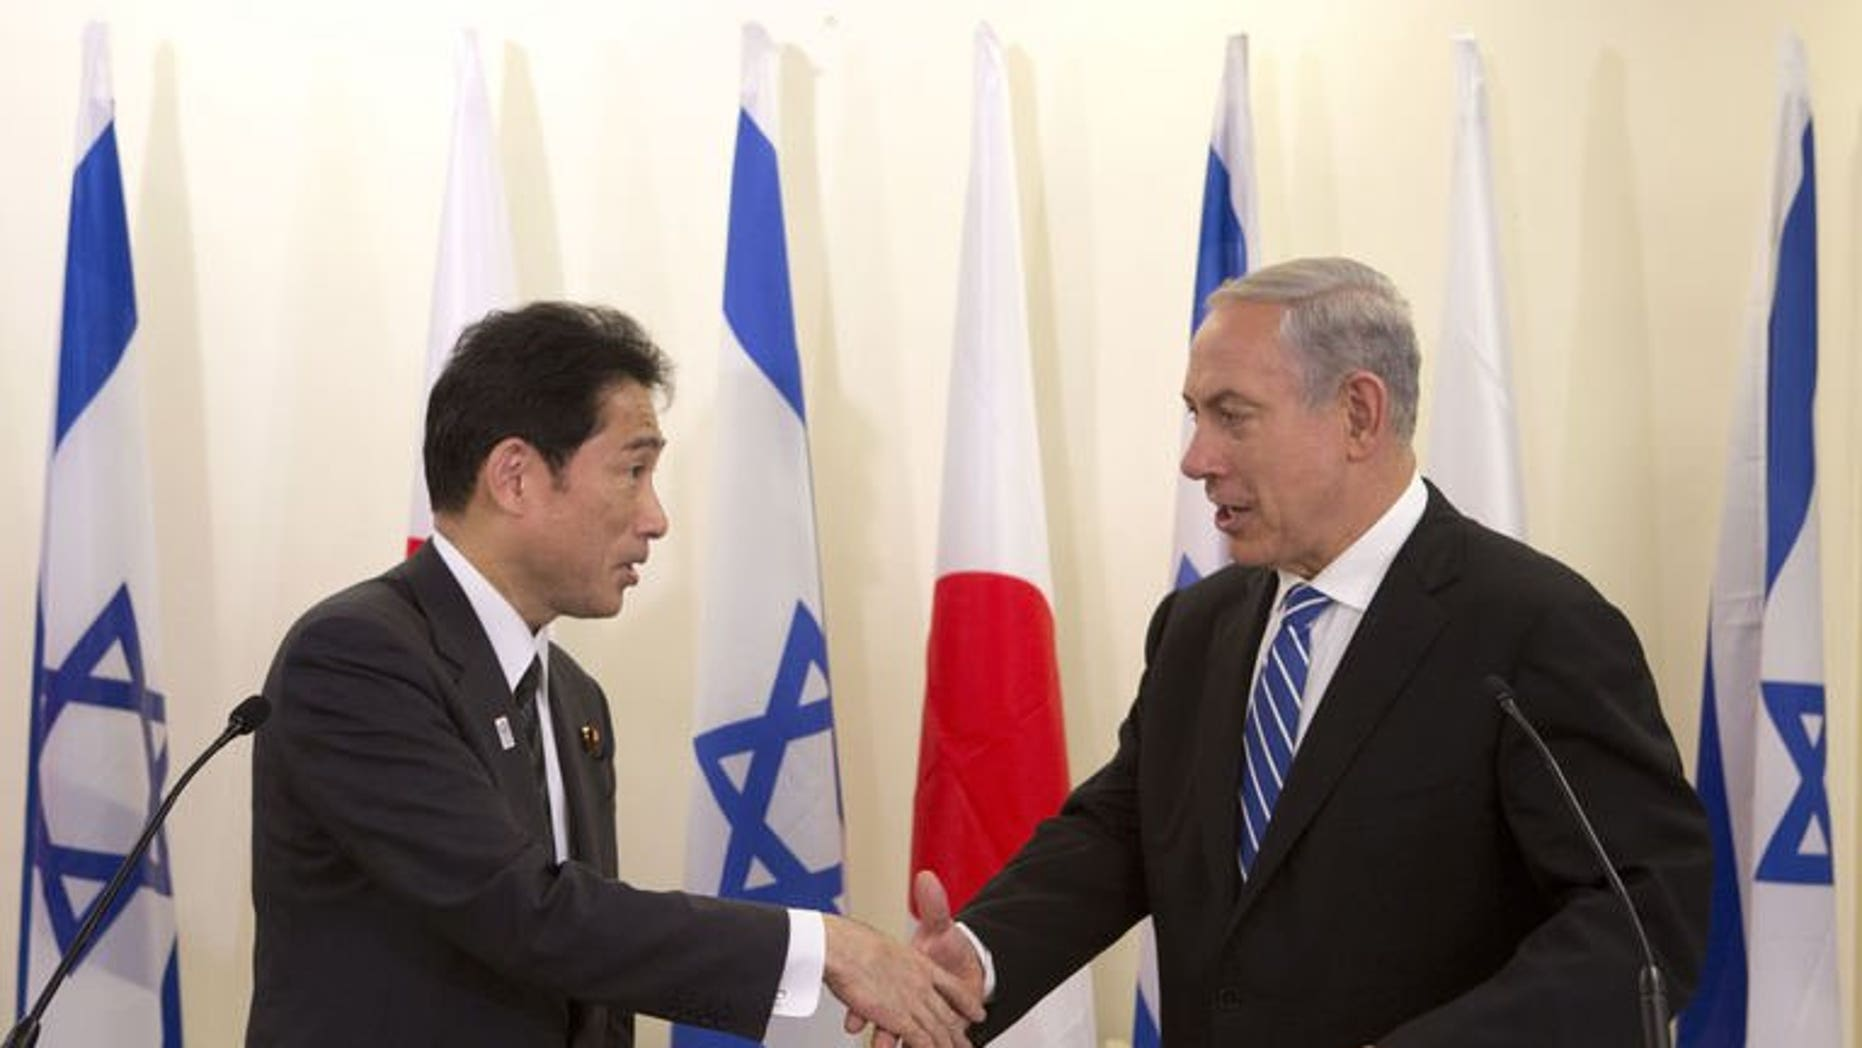 Japanese Foreign Minister Fumio Kishida (left) shakes hands with Israeli Prime Minister Benjamin Netanyahu during a joint press conference in Jerusalem, on July 24, 2013. Netanyahu has urged greater pressure on Iran over its nuclear programme as he met Kishida.